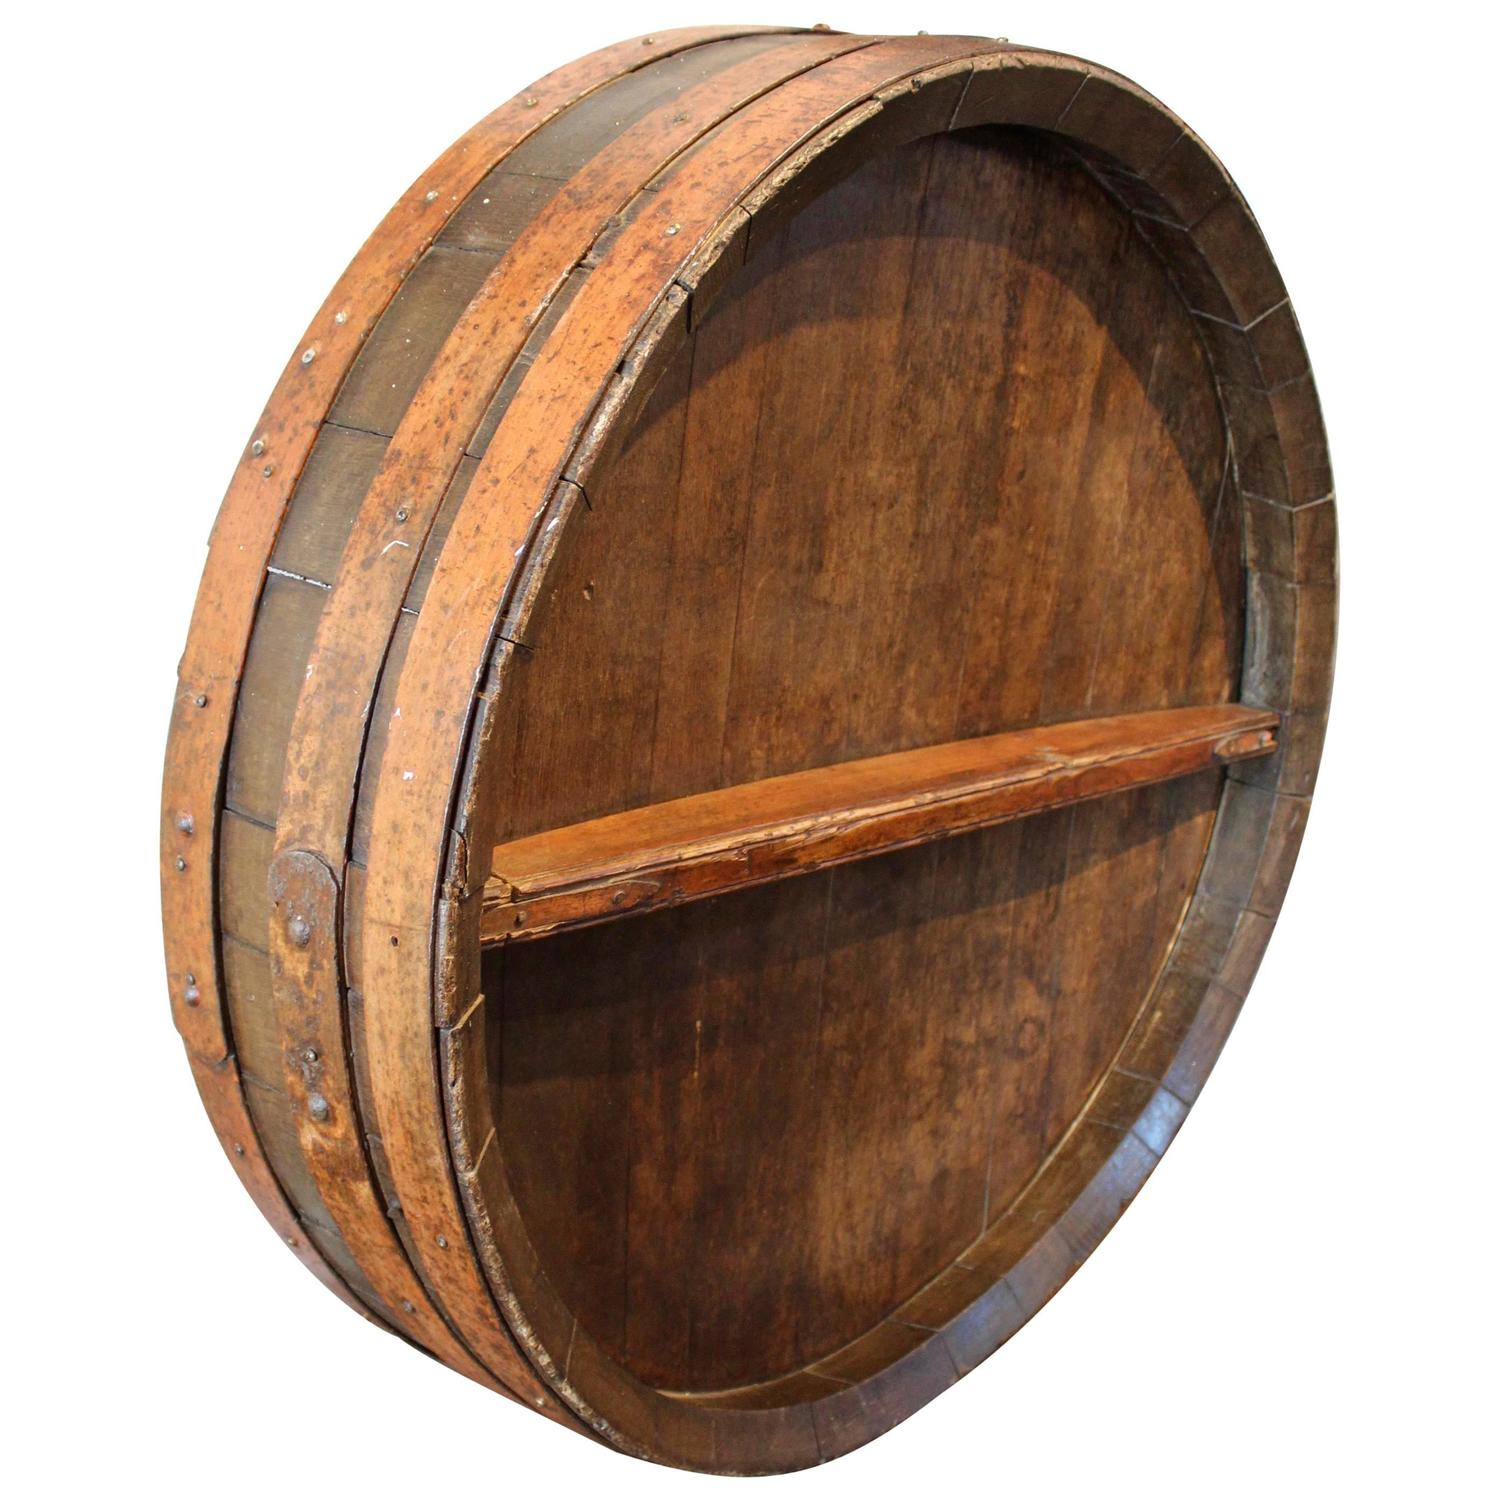 Wine Barrel Wall Art 15 creative diy wine barrel project ideas gallery for wine barrel